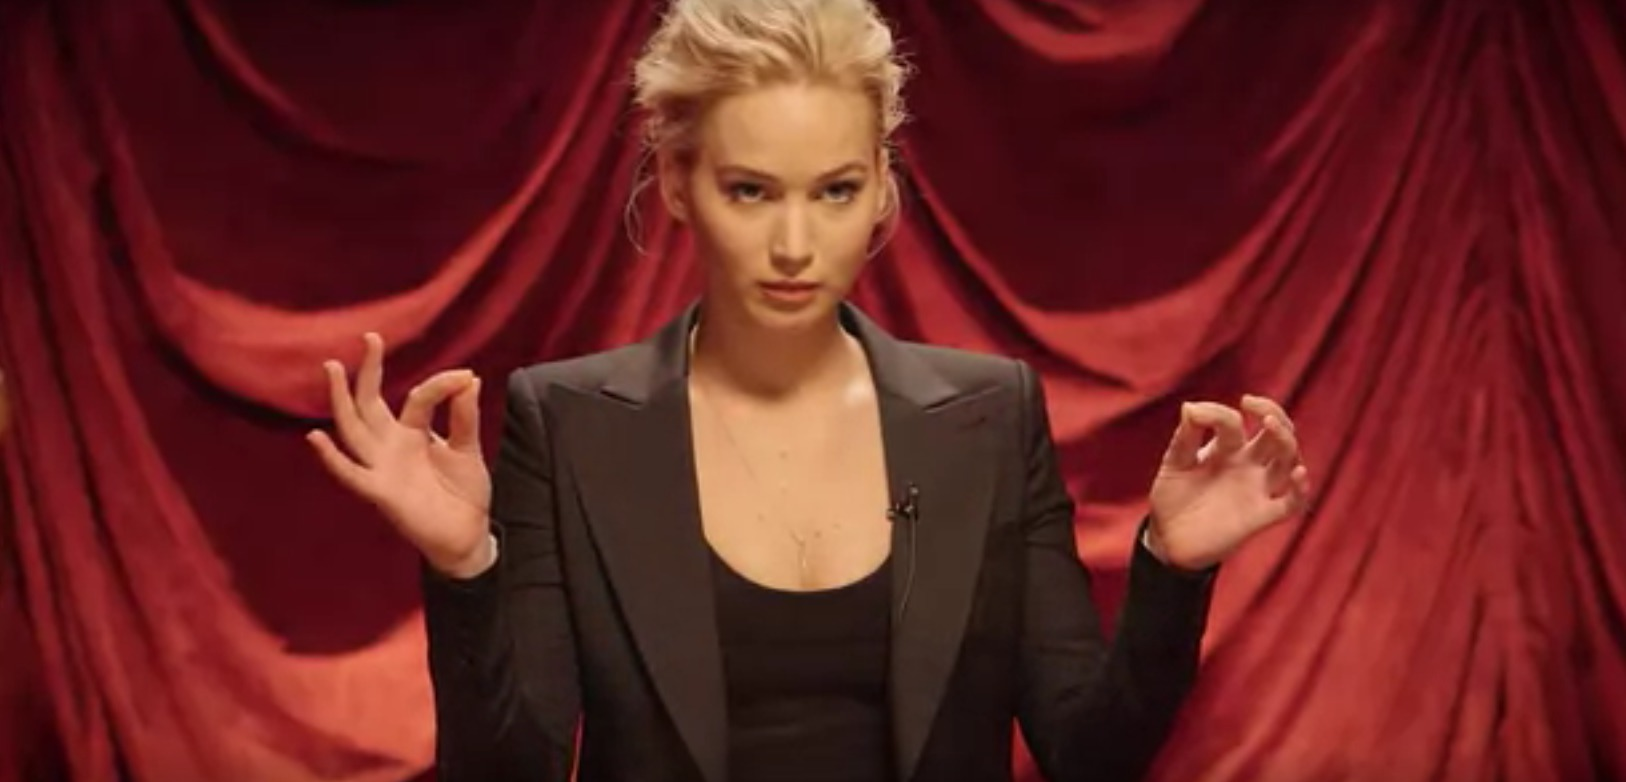 Jennifer Lawrence is good at everything, including miming